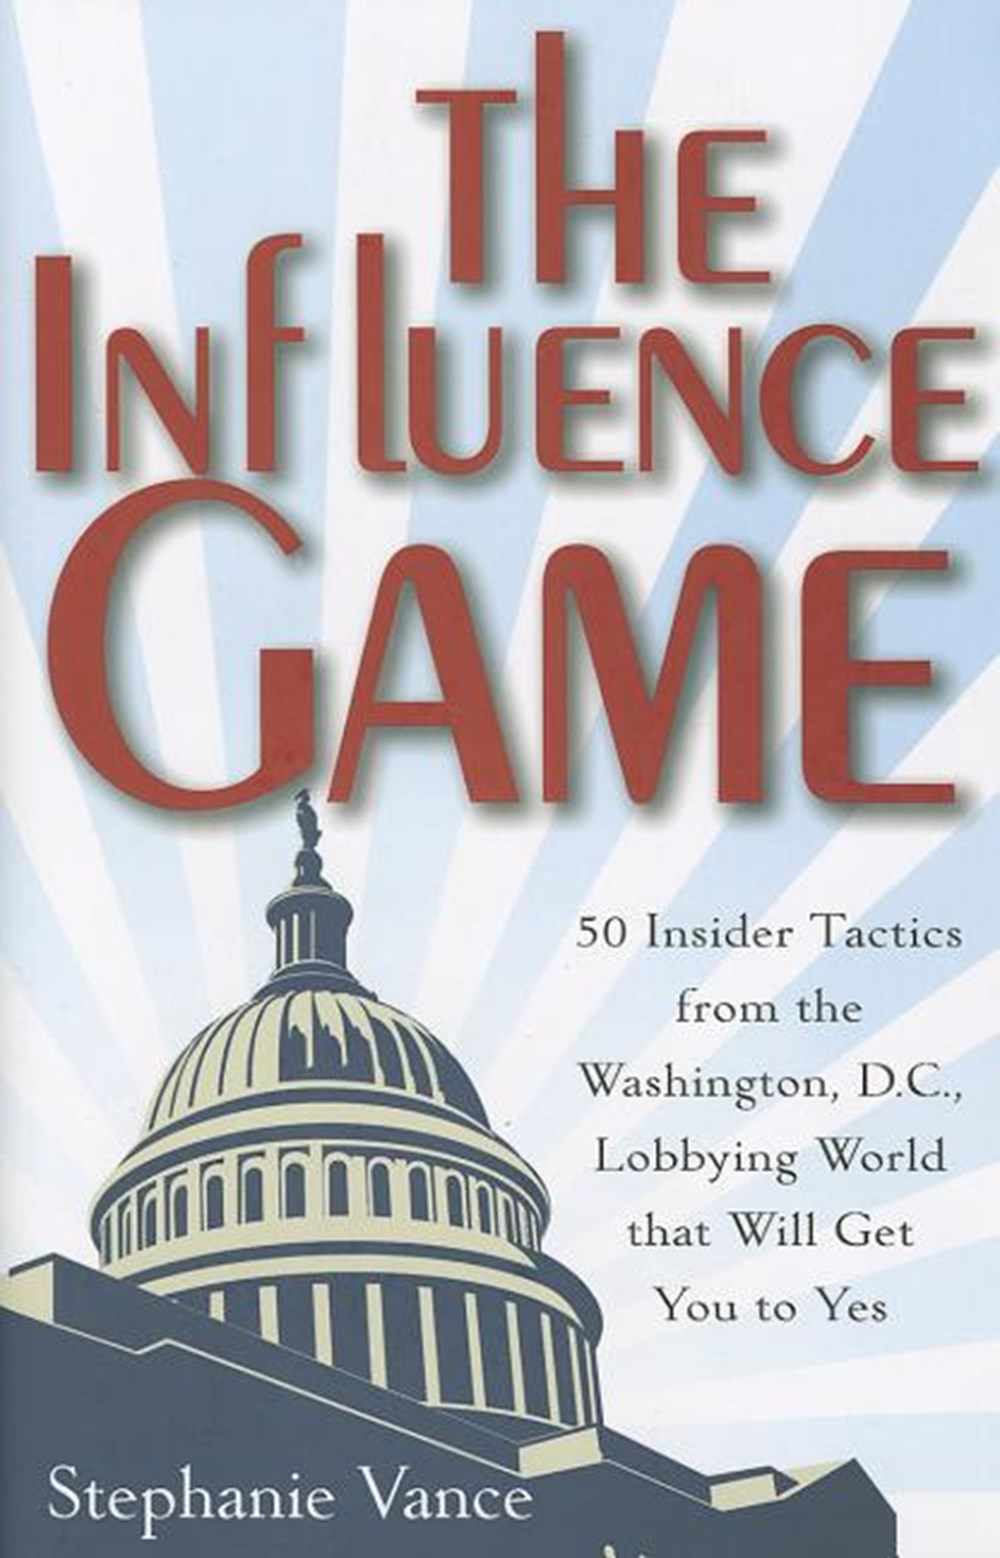 Influence Game 50 Insider Tactics from the Washington, D.C. Lobbying World That Will Get You to Yes